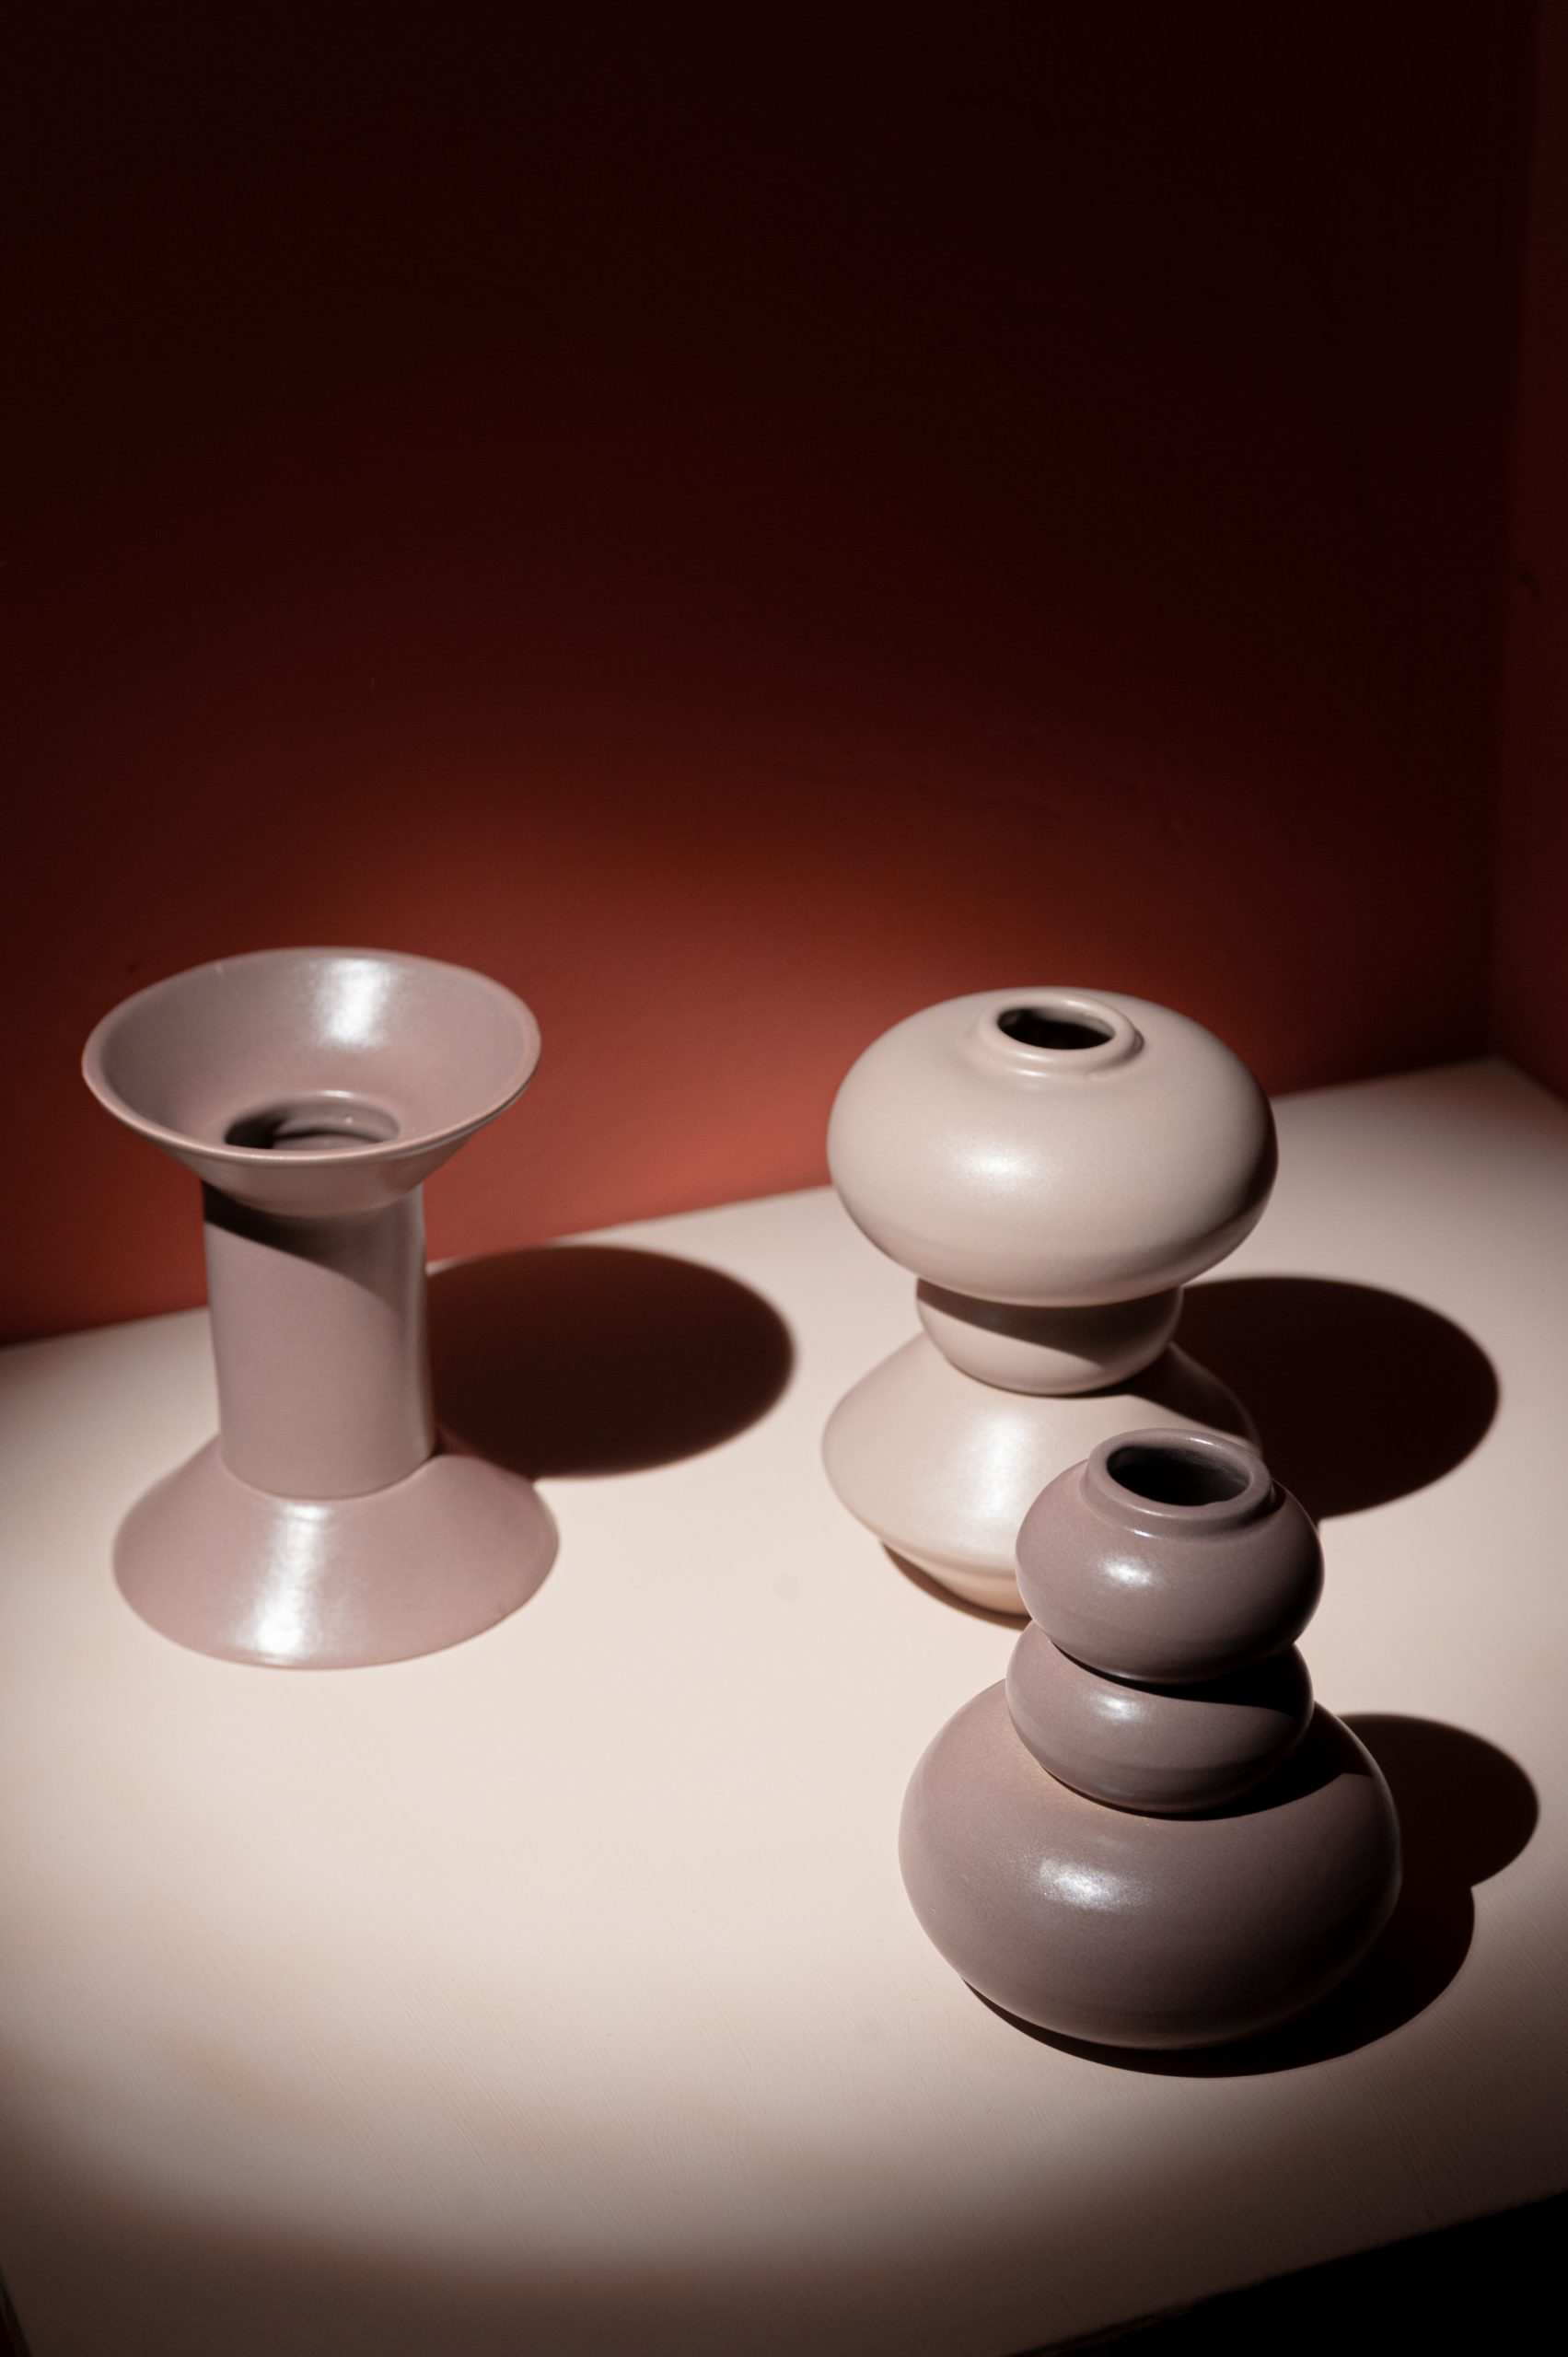 Collection SOVRAPPOSIZIONI sculptural vases